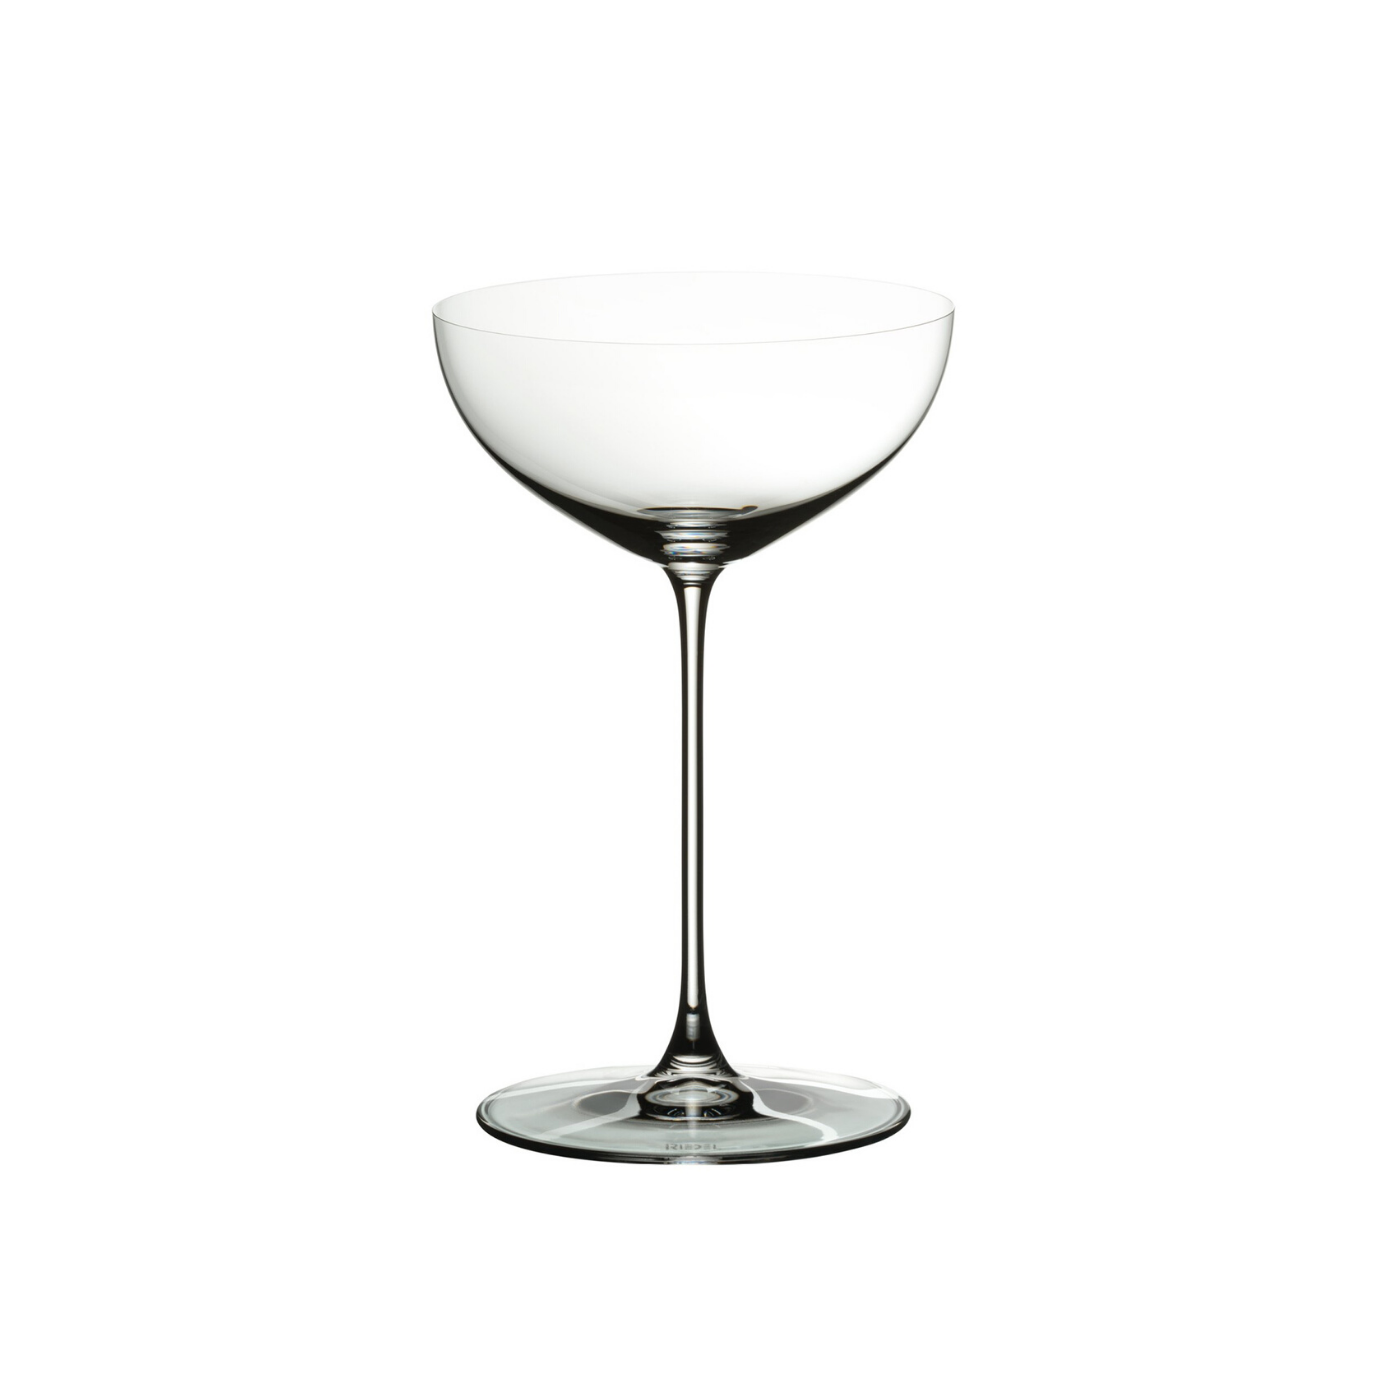 Riedel Veritas Coupes (set of 2)